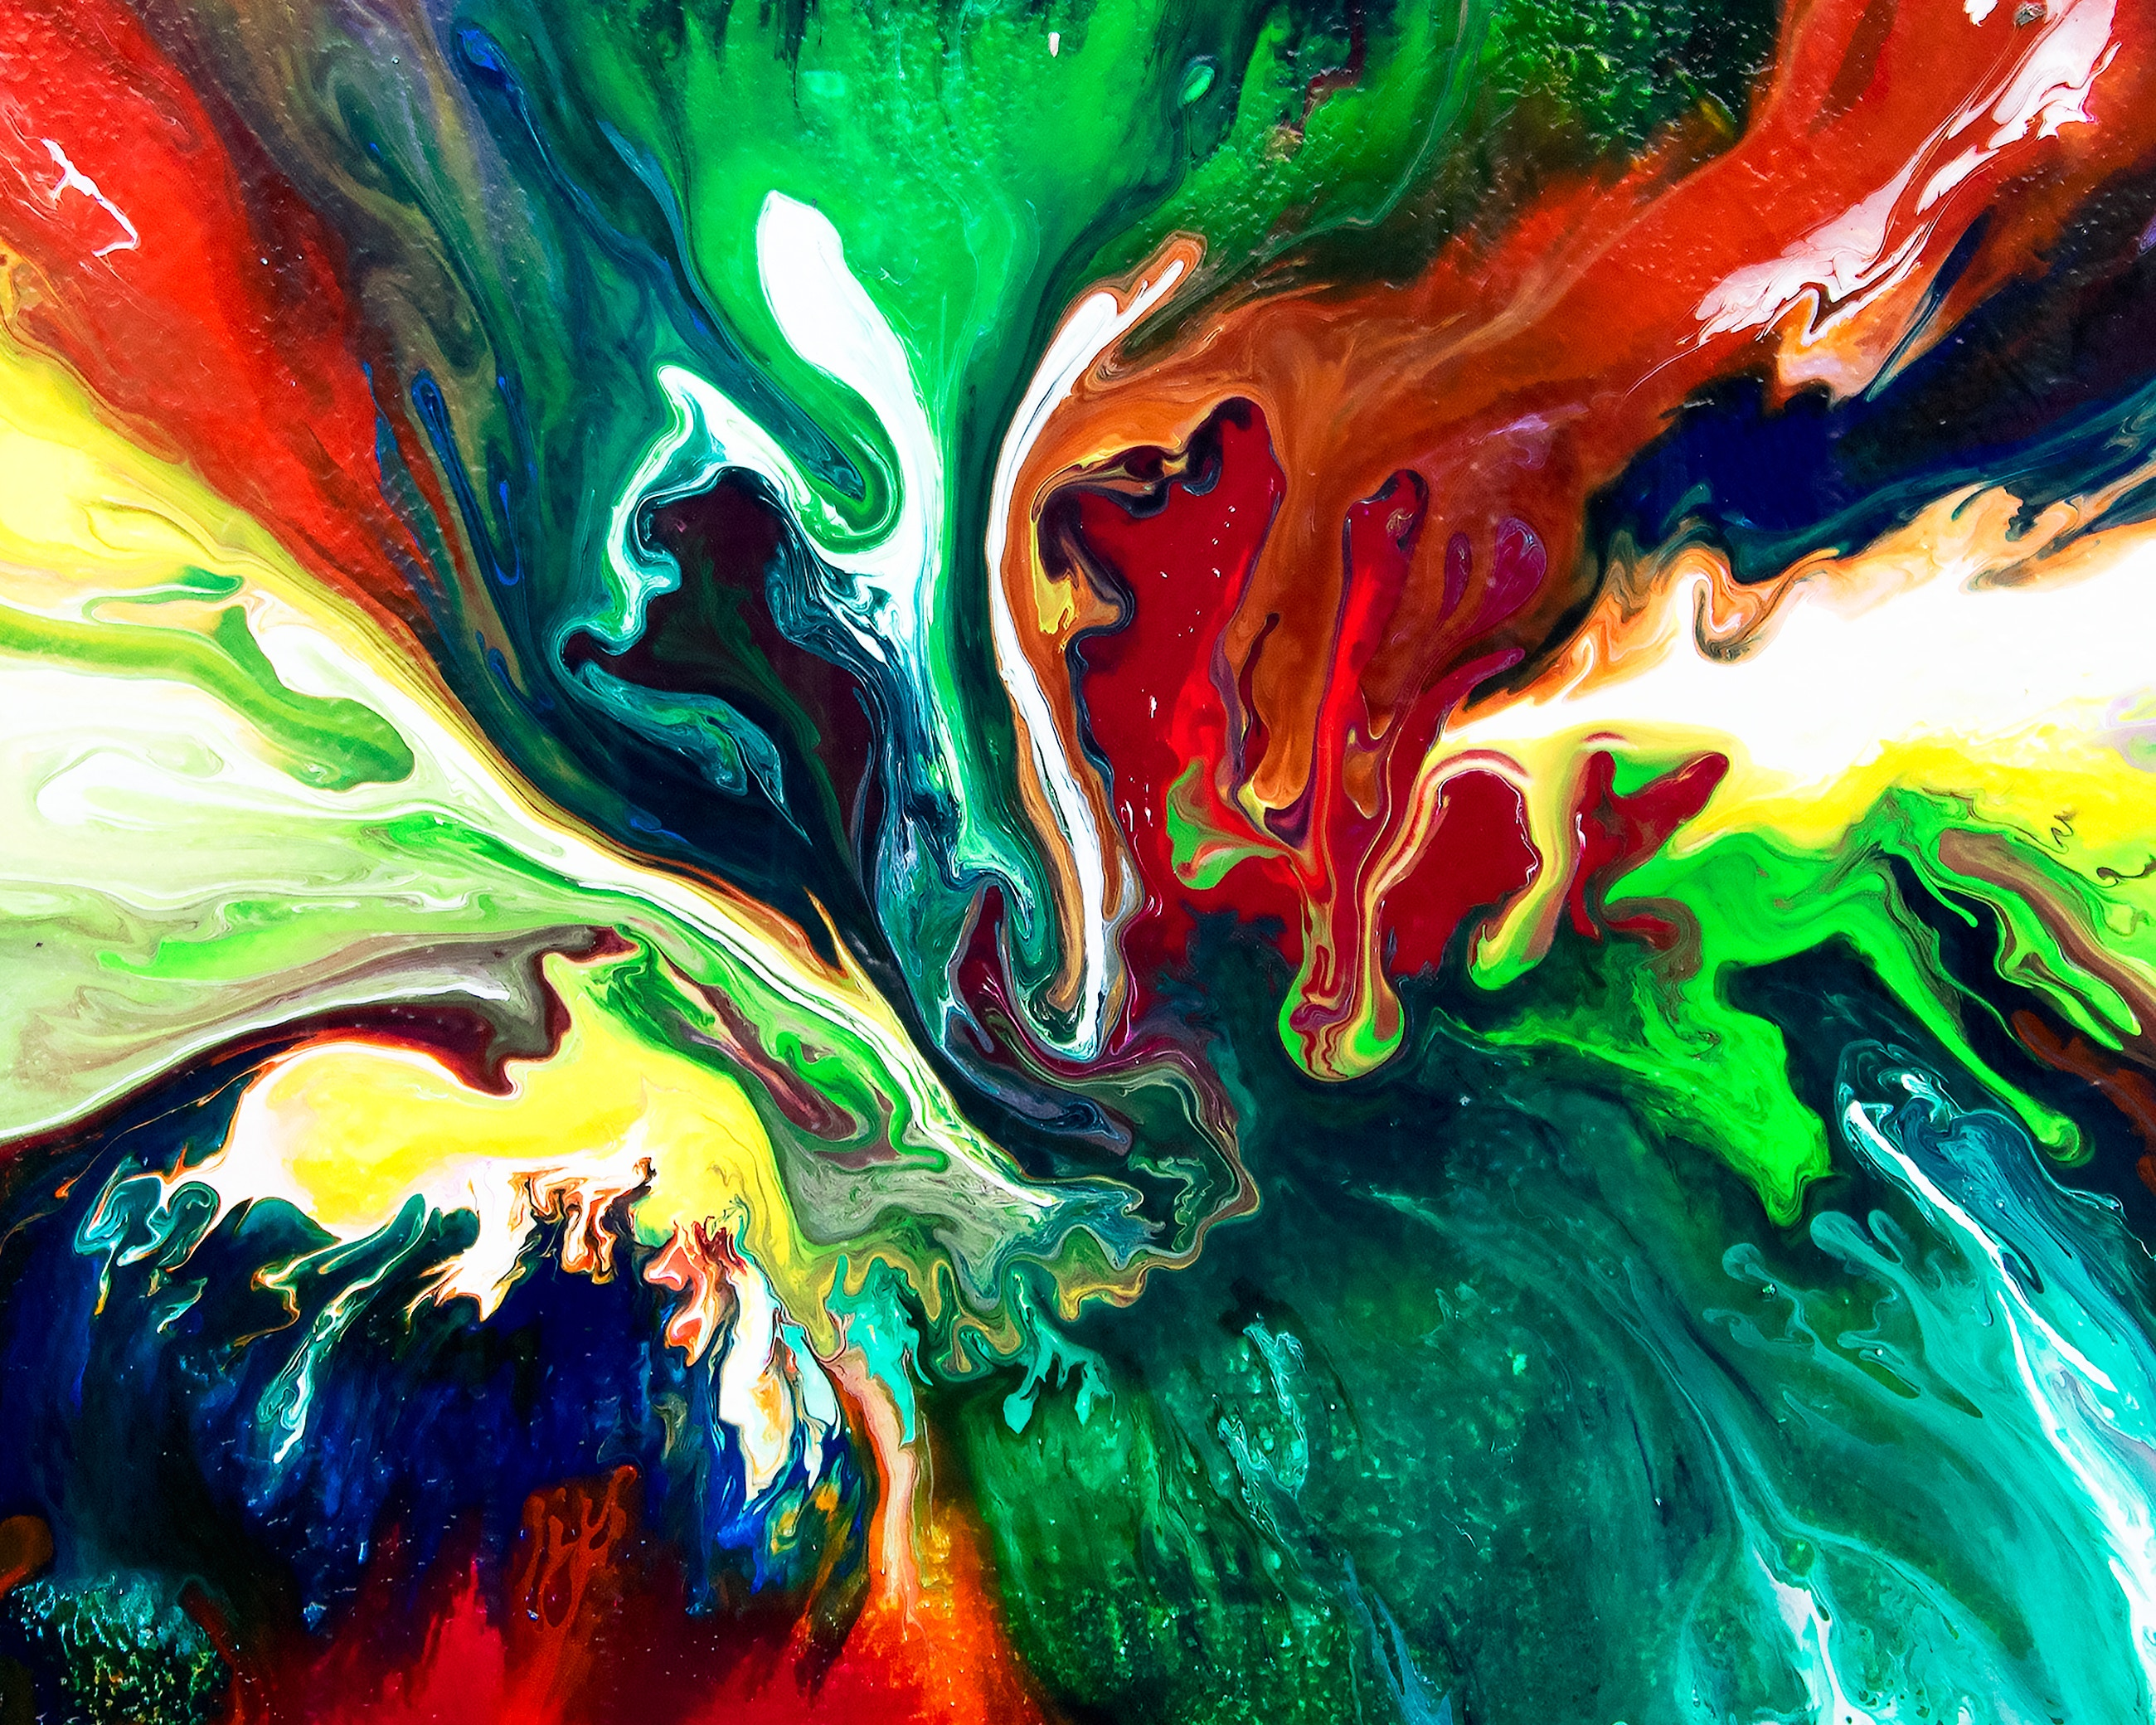 Abstract Artwork Wallpaper posted by Sarah Johnson 2600x2080